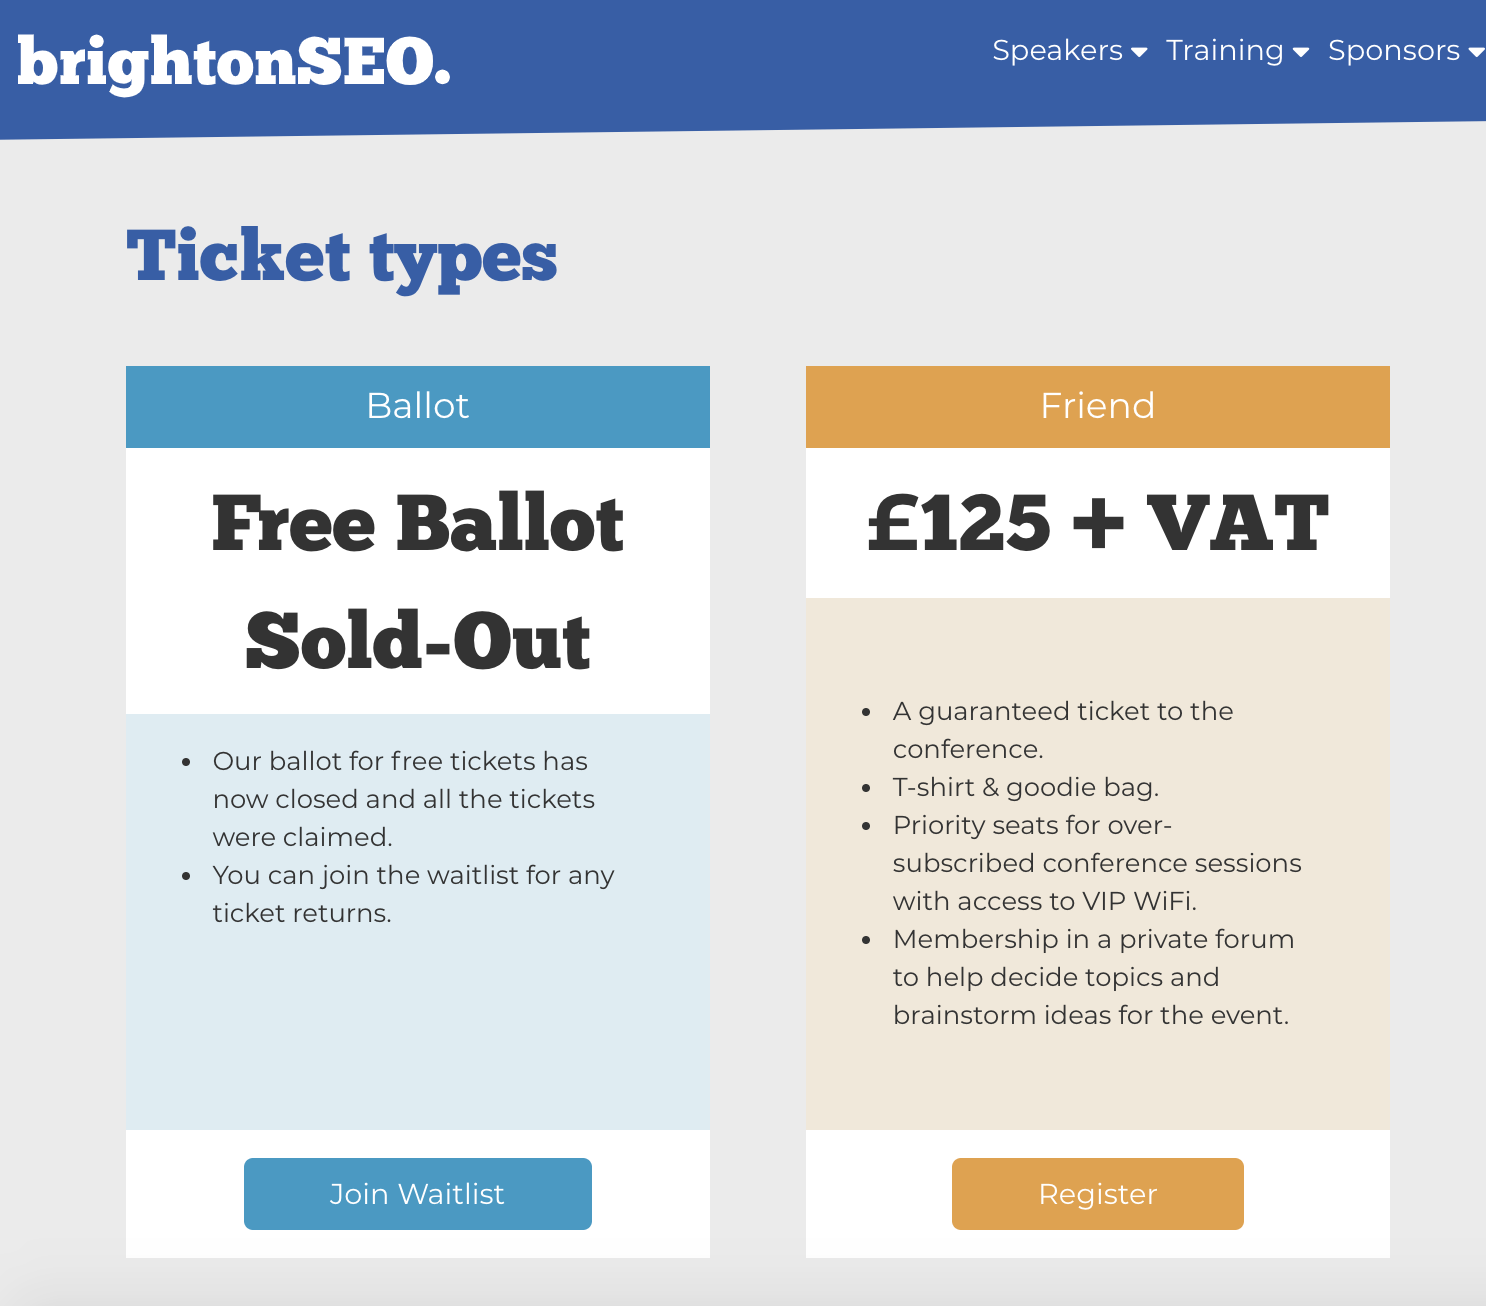 brightonseo waiting list lead magnet.